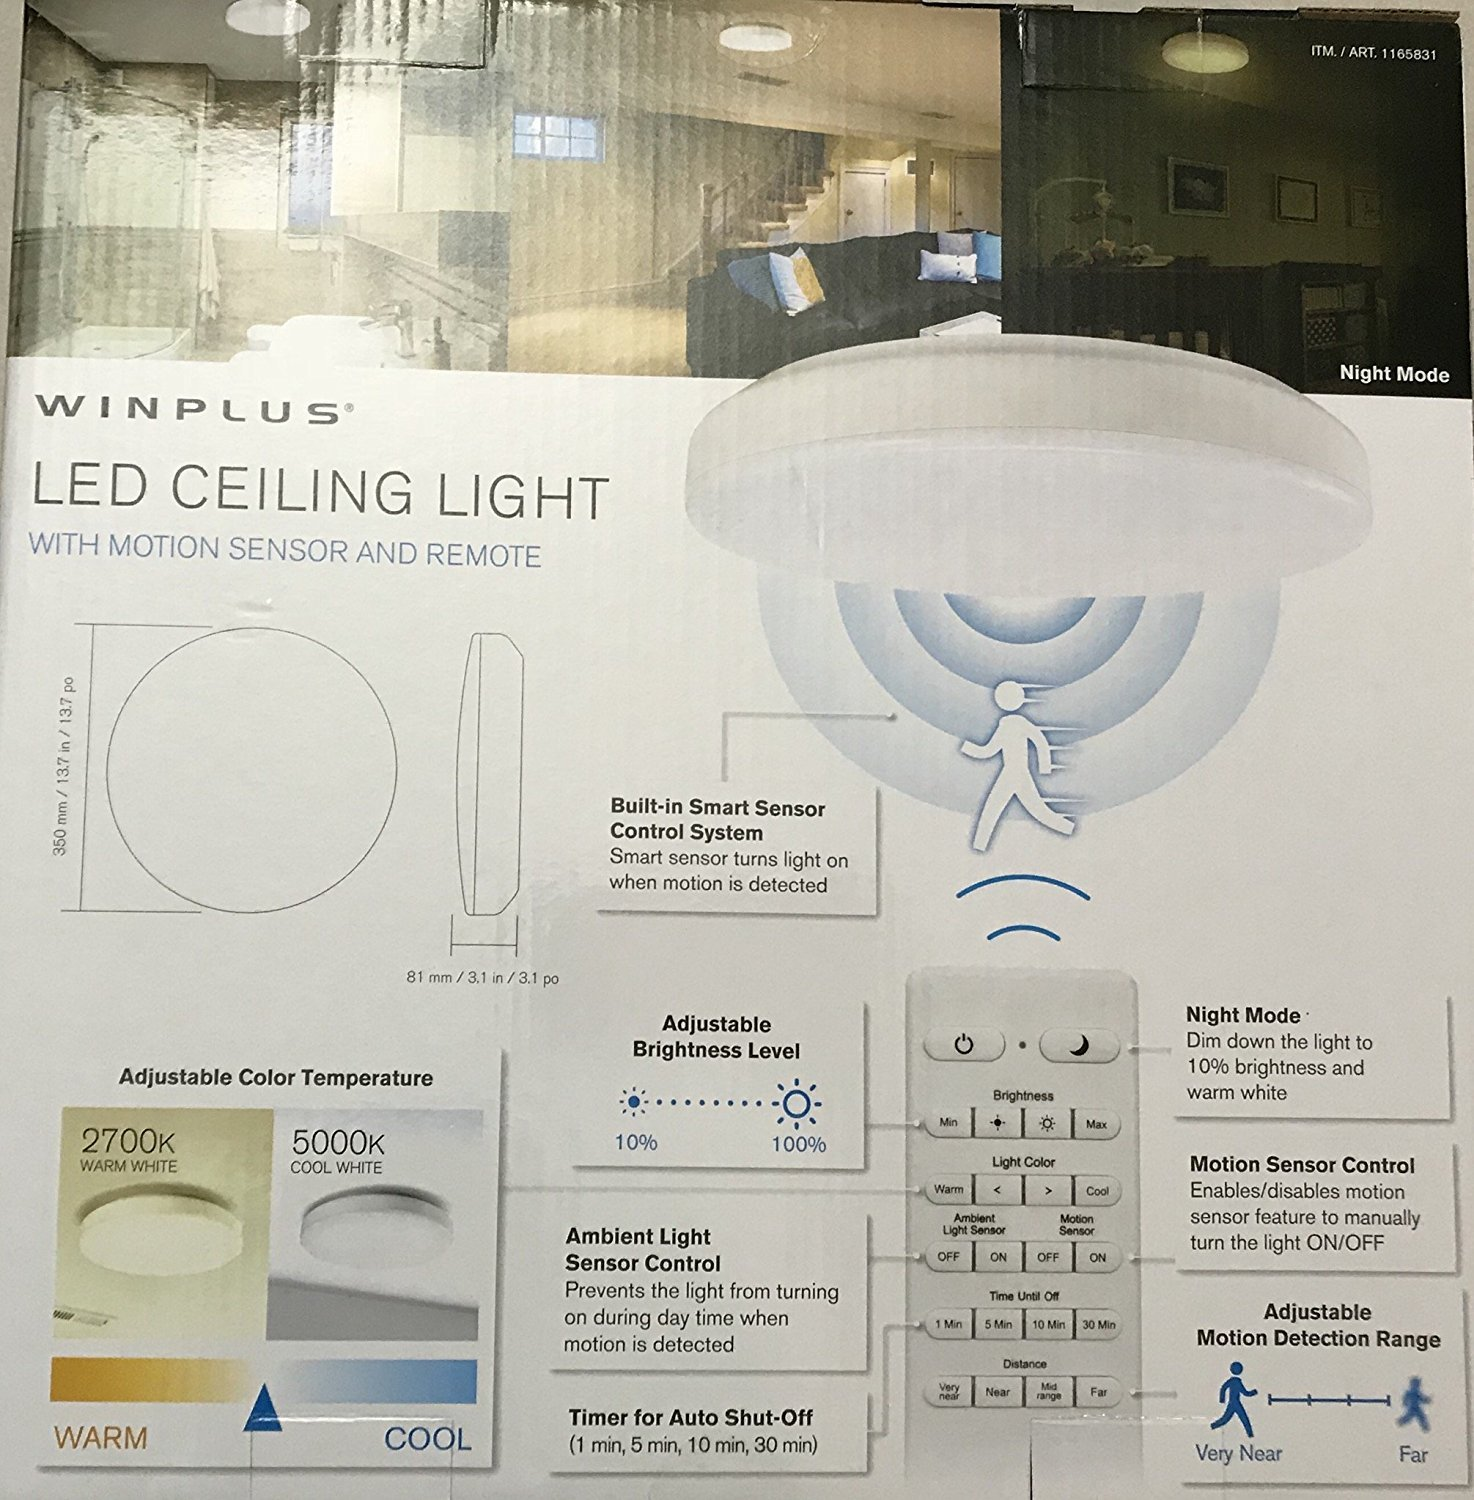 WINPLUS LED CEILING LIGHT WITH MOTION SENSOR AND REMOTE - - Amazon.com